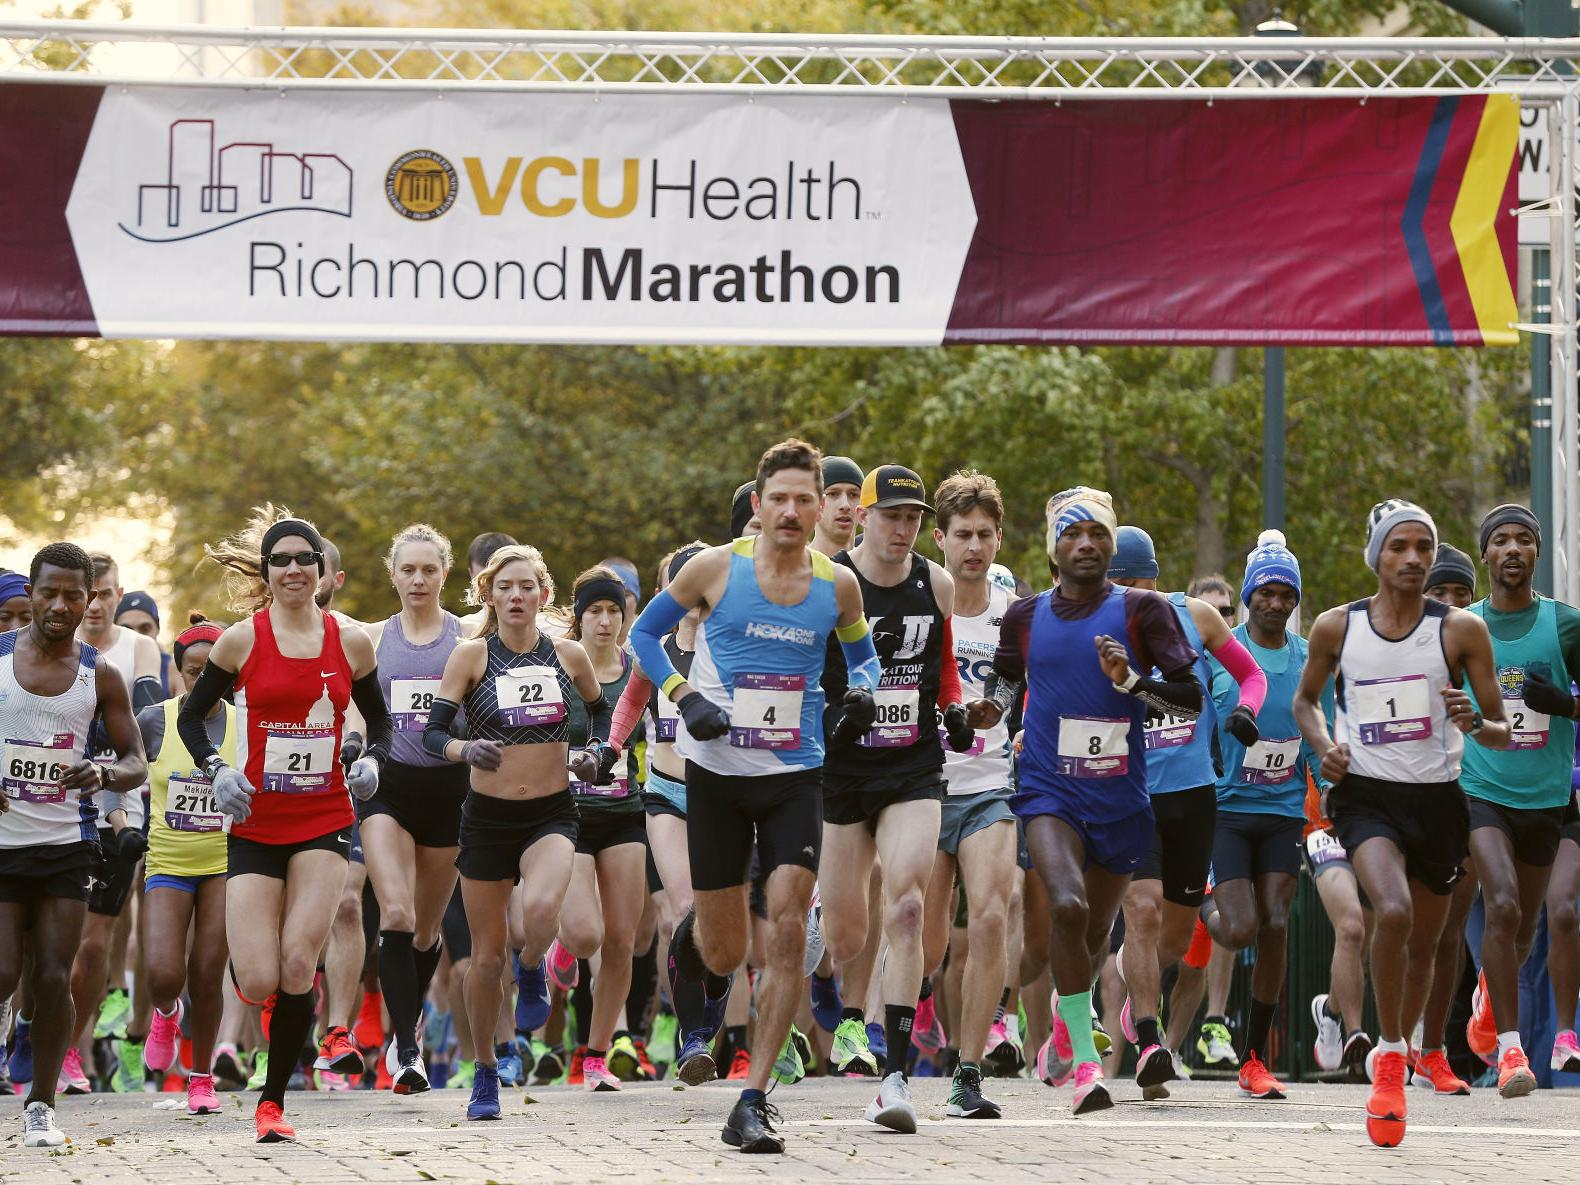 vcu health richmond marathon winners local richmond com vcu health richmond marathon winners